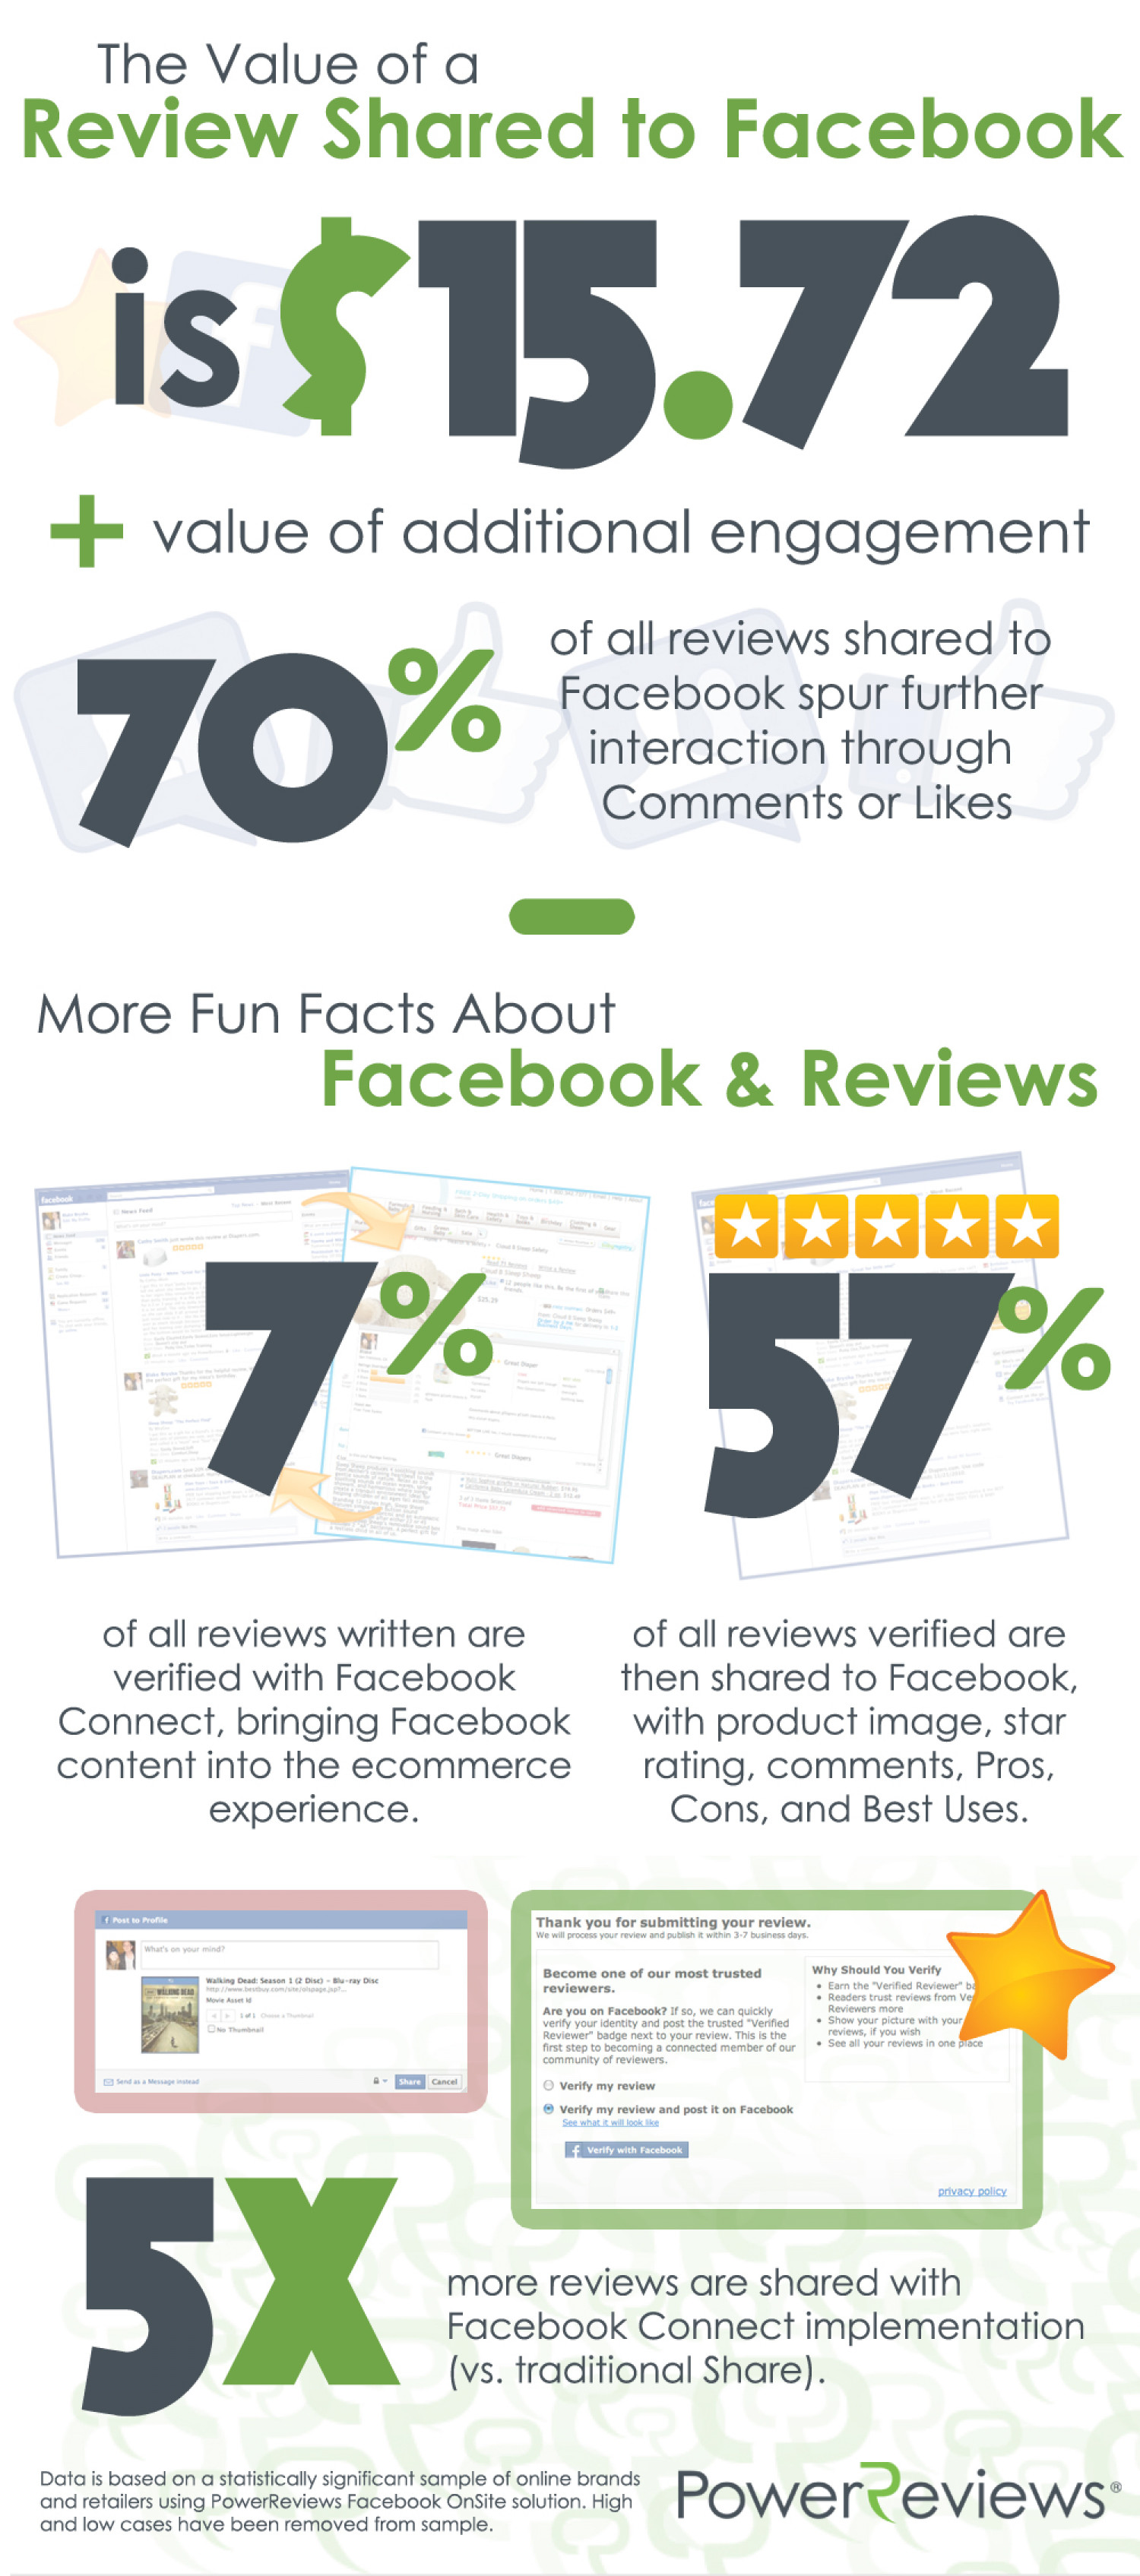 Facebook Facts and Reviews Infographic